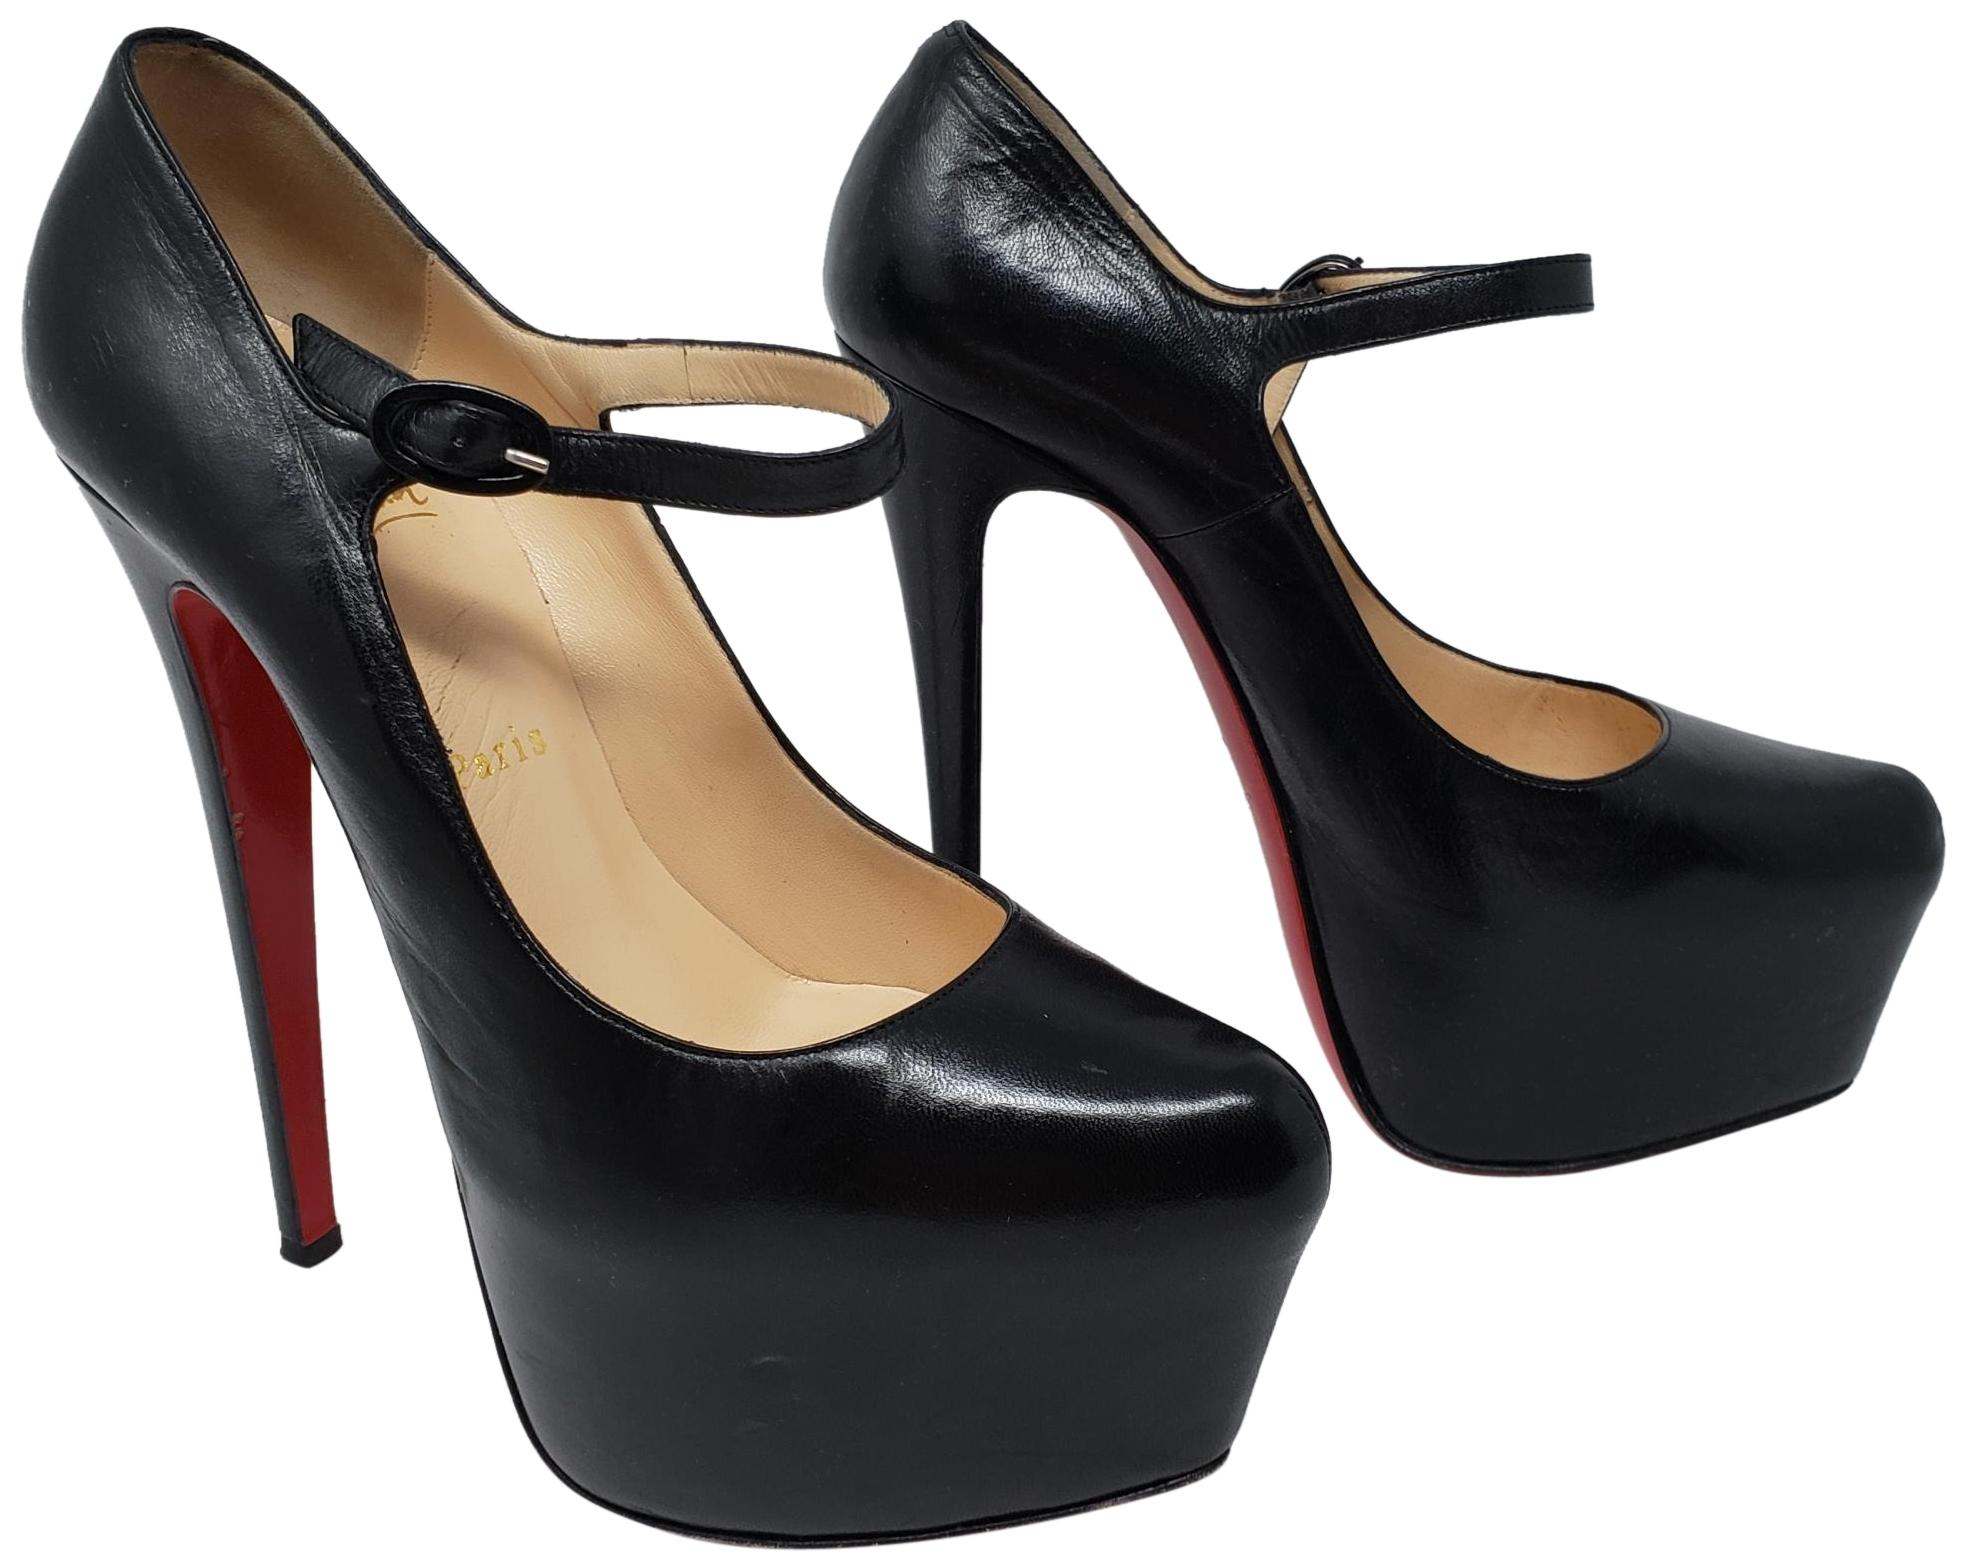 682ad779e17 ... norway christian louboutin ankle strap platform mary jane daffodile  lady daffodile black pumps 34b08 3abec